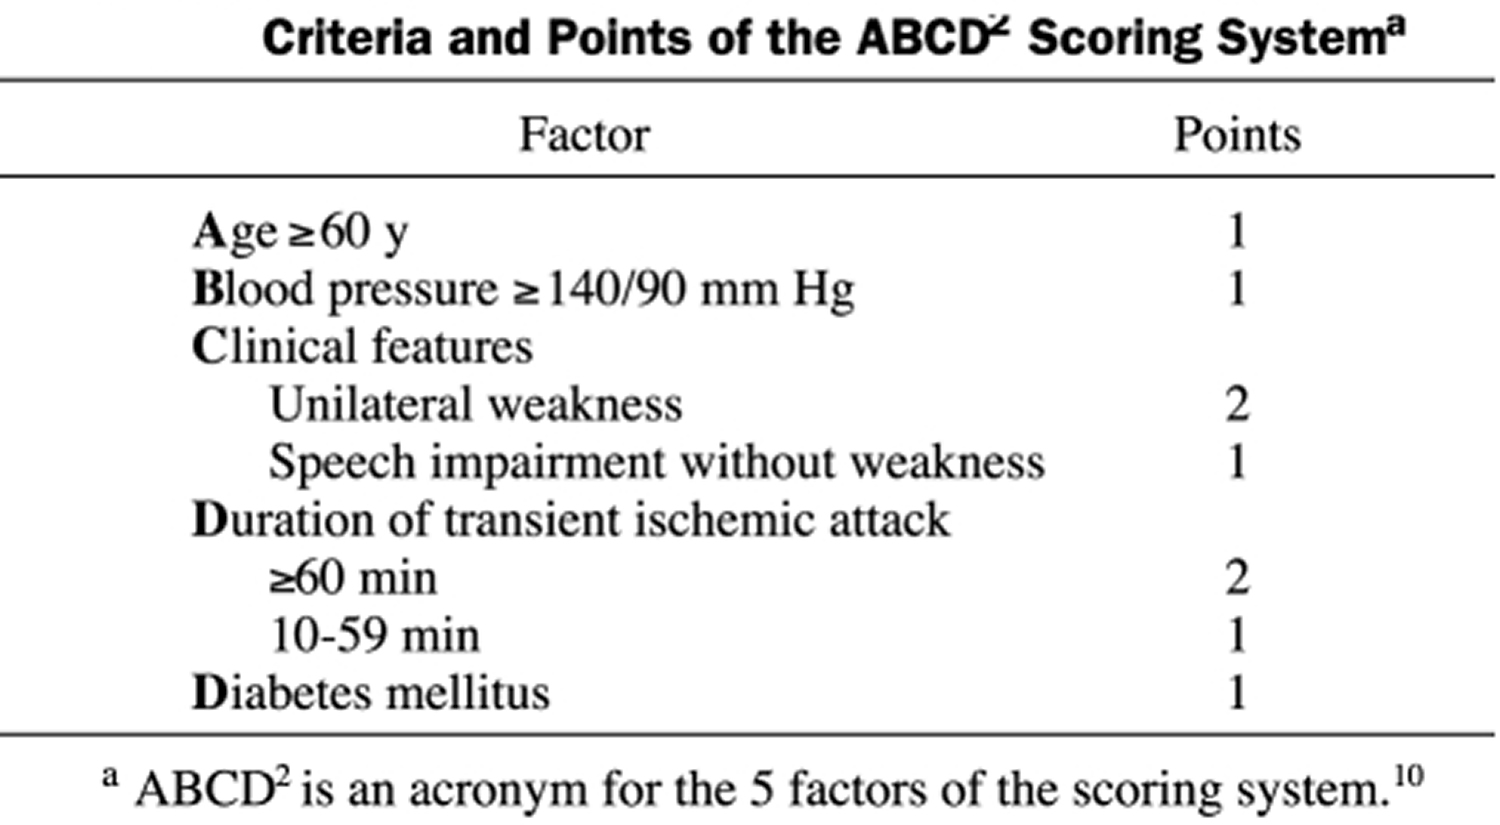 Criteria and Points of the ABCD Scoring System